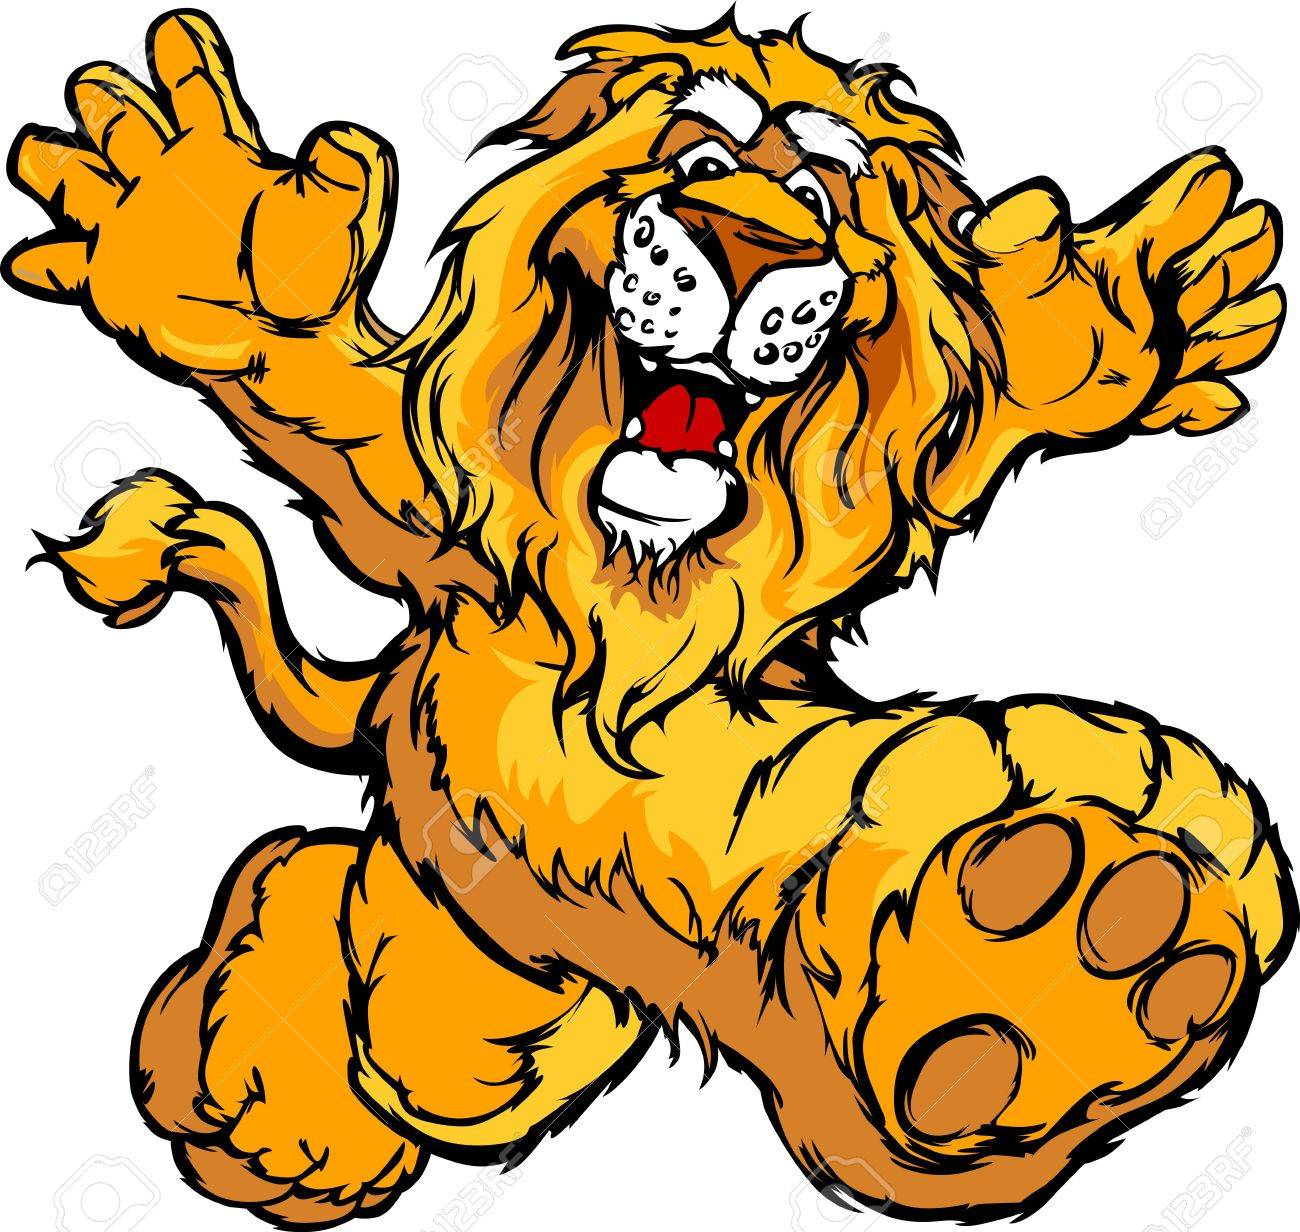 Smiling Lion Running with hands Mascot Illustration Stock Vector - 11696900